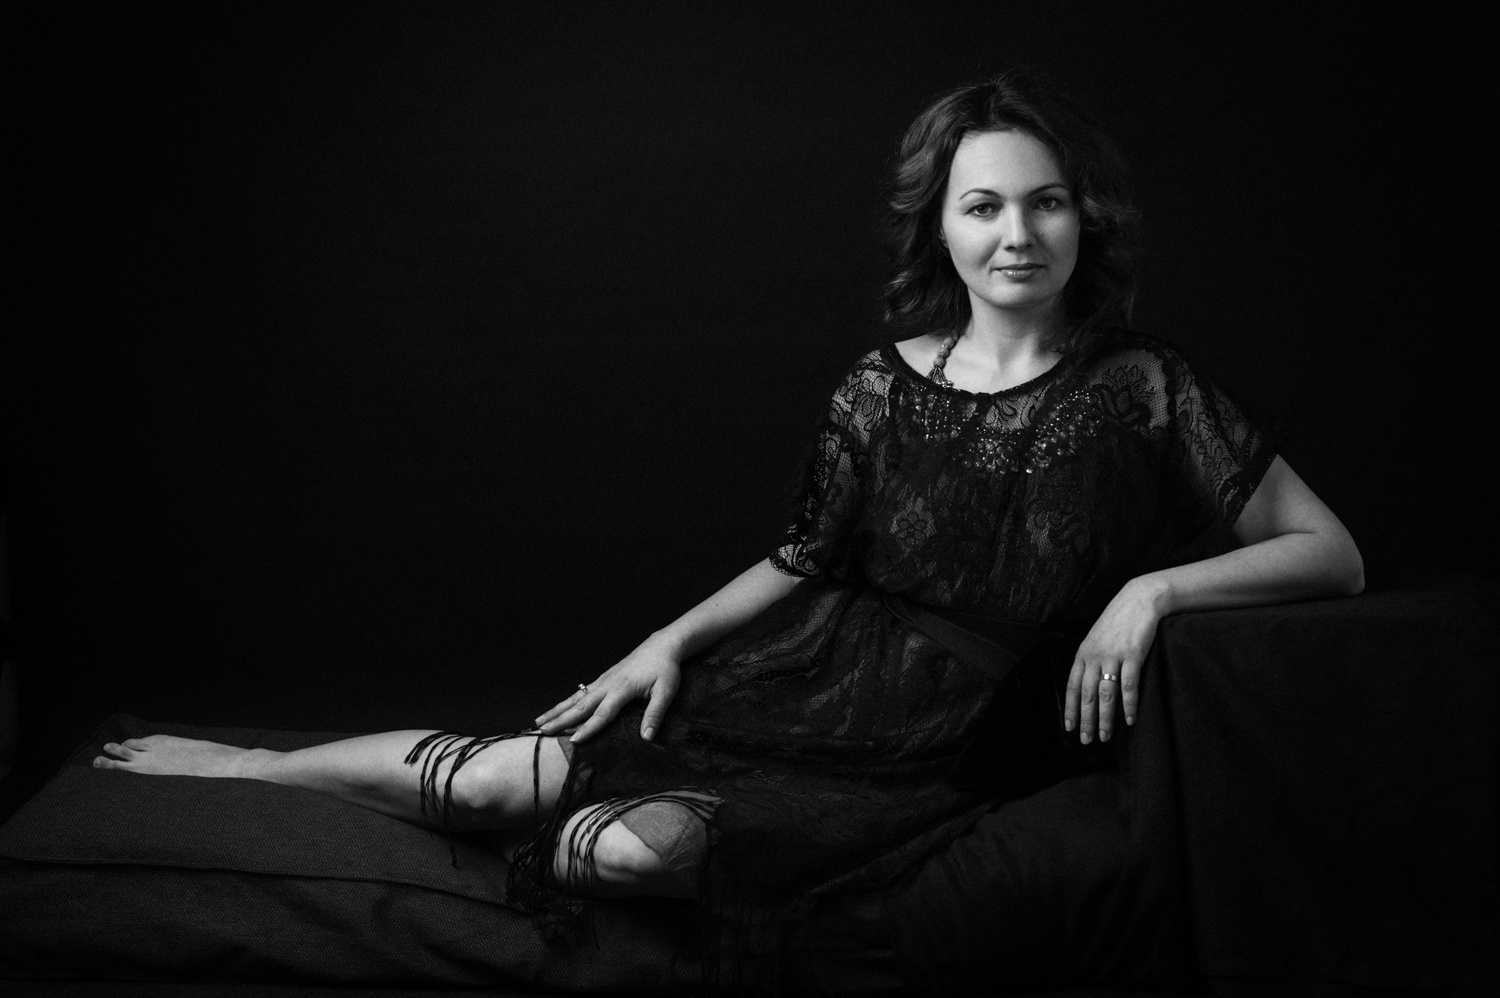 Black and white contemporary portrait of a woman wearing a black dress on a black backrgound